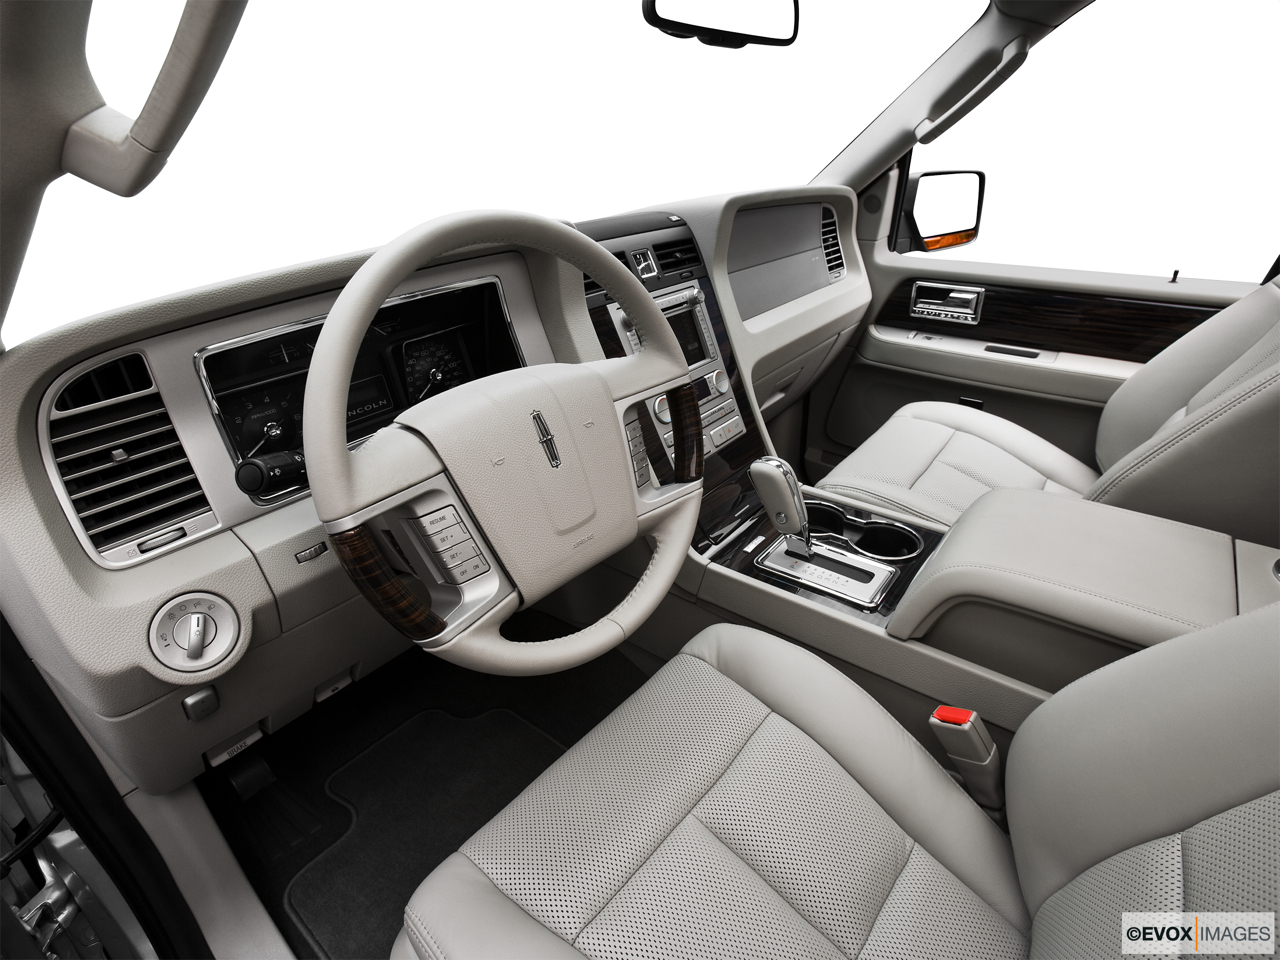 2010 Lincoln Navigator Base Interior Hero (driver's side).